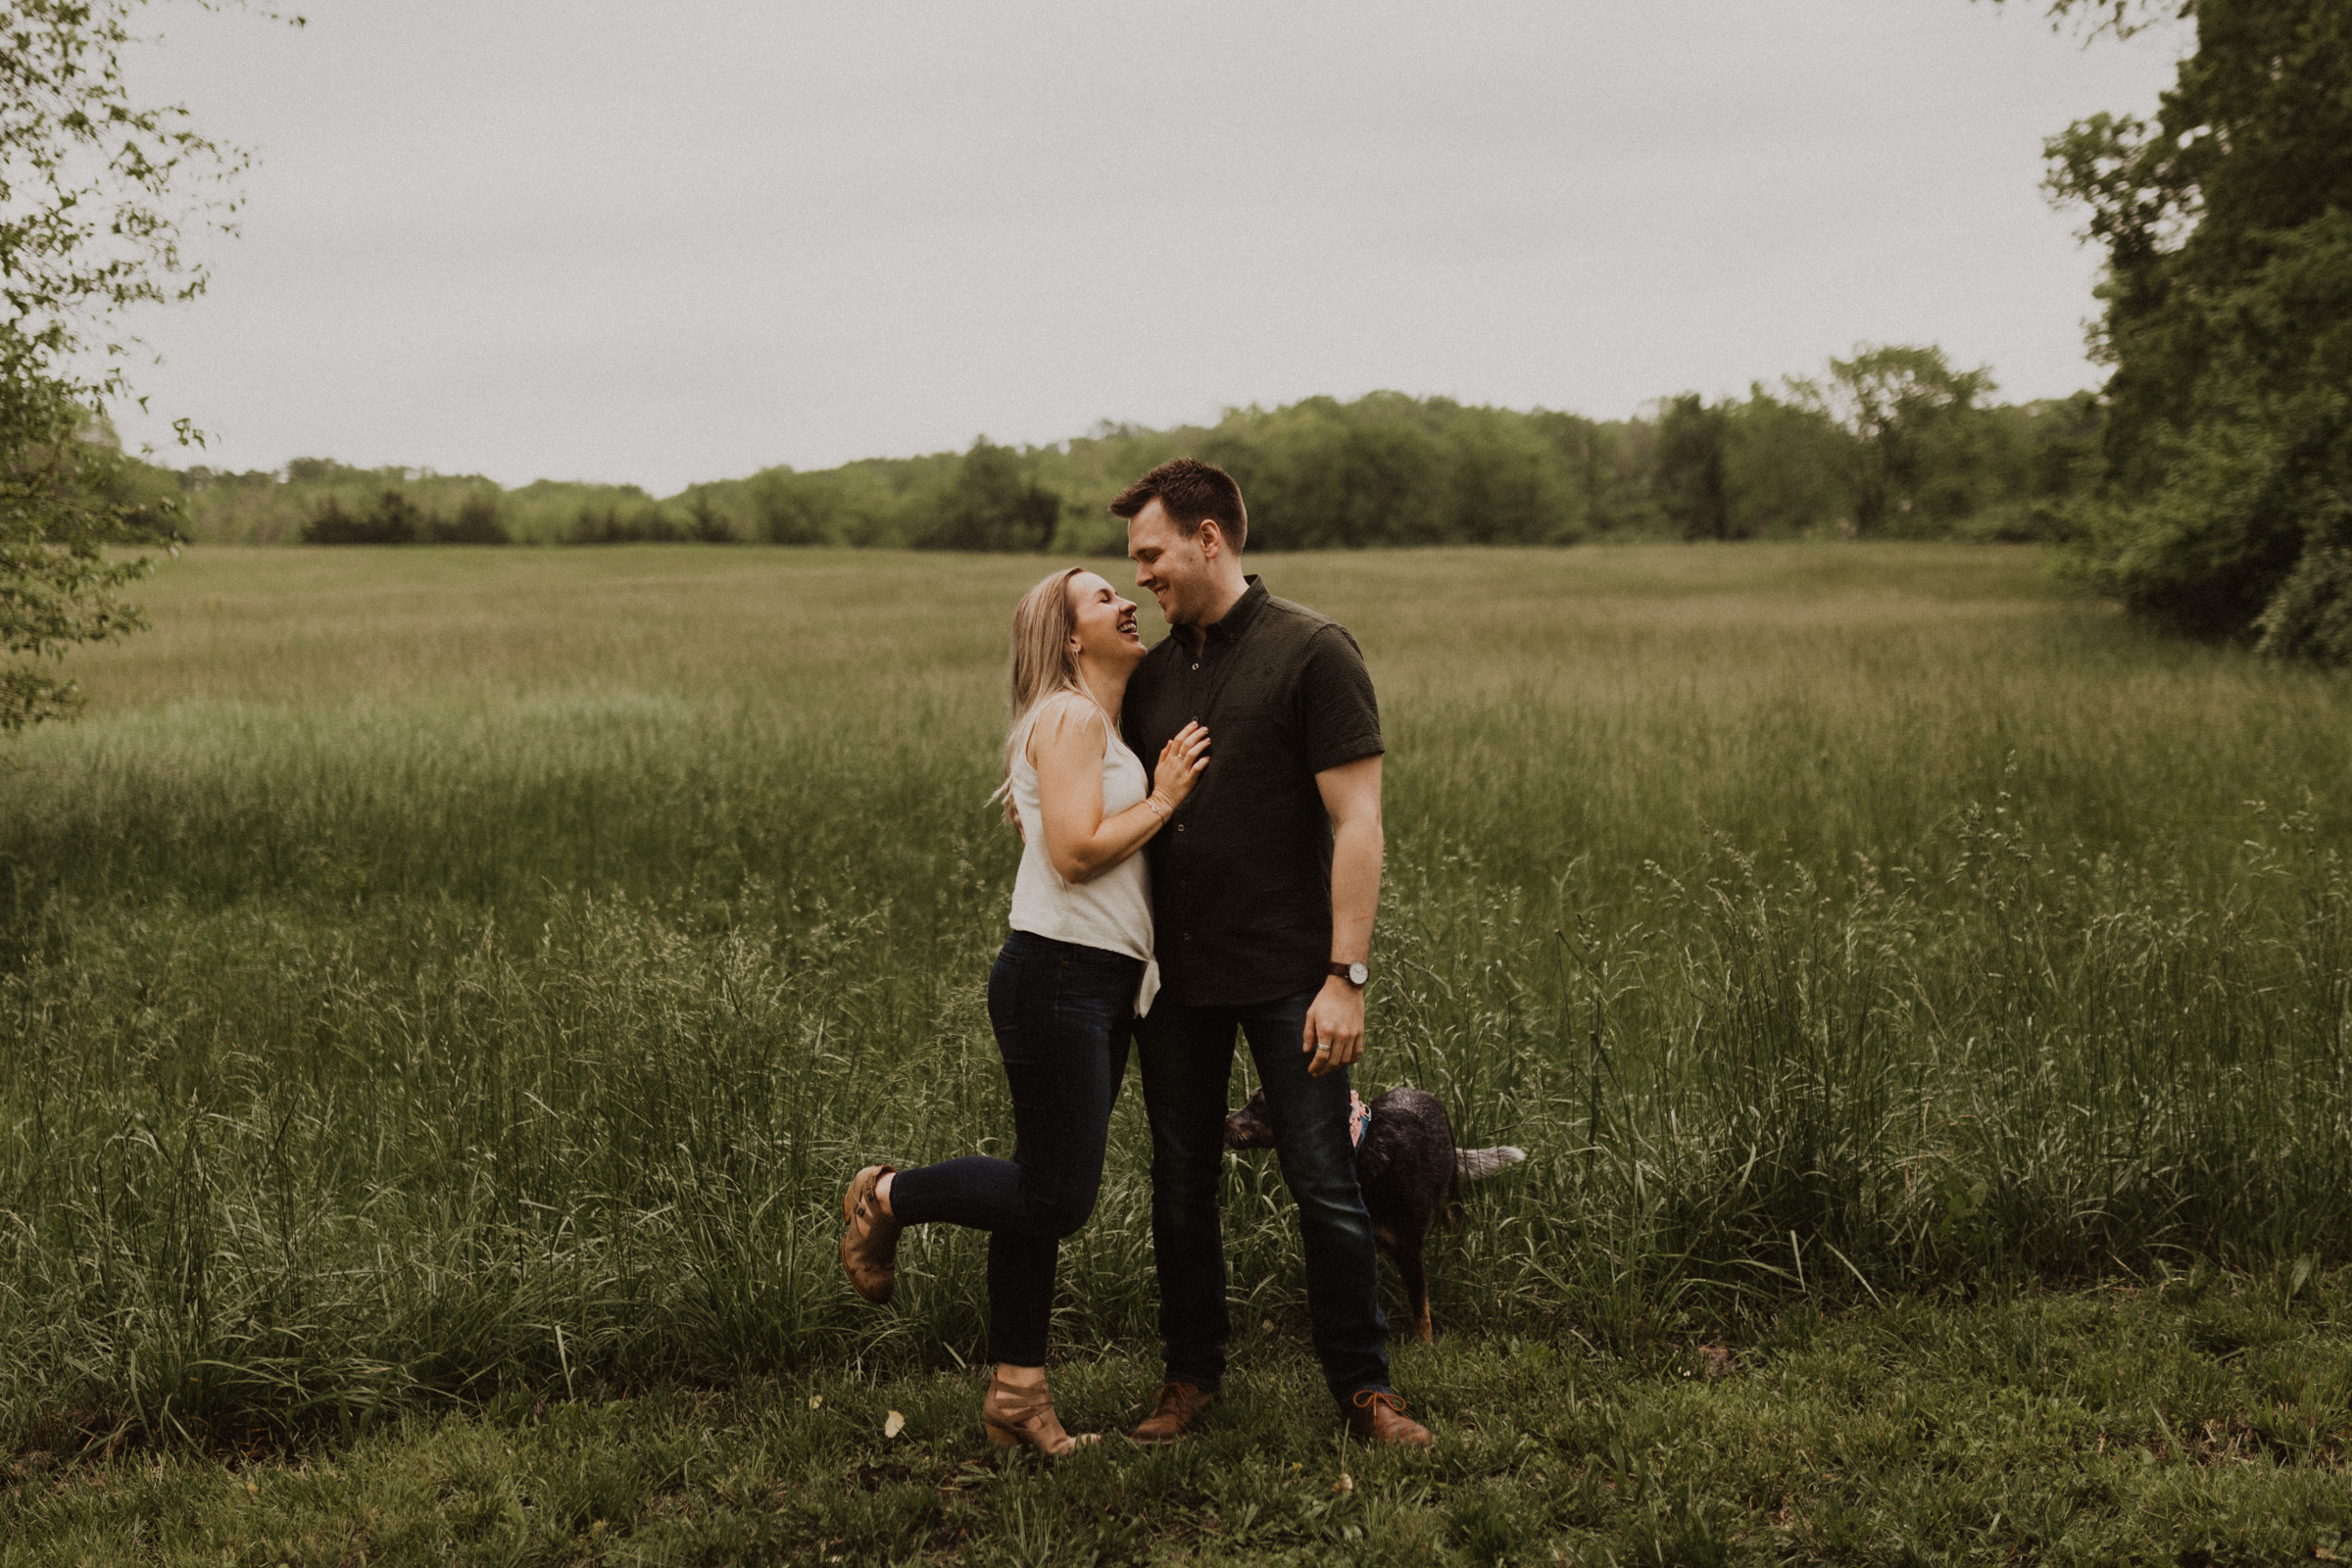 alyssa barletter photography shawnee mission park engagement session photographer sunset-8.jpg